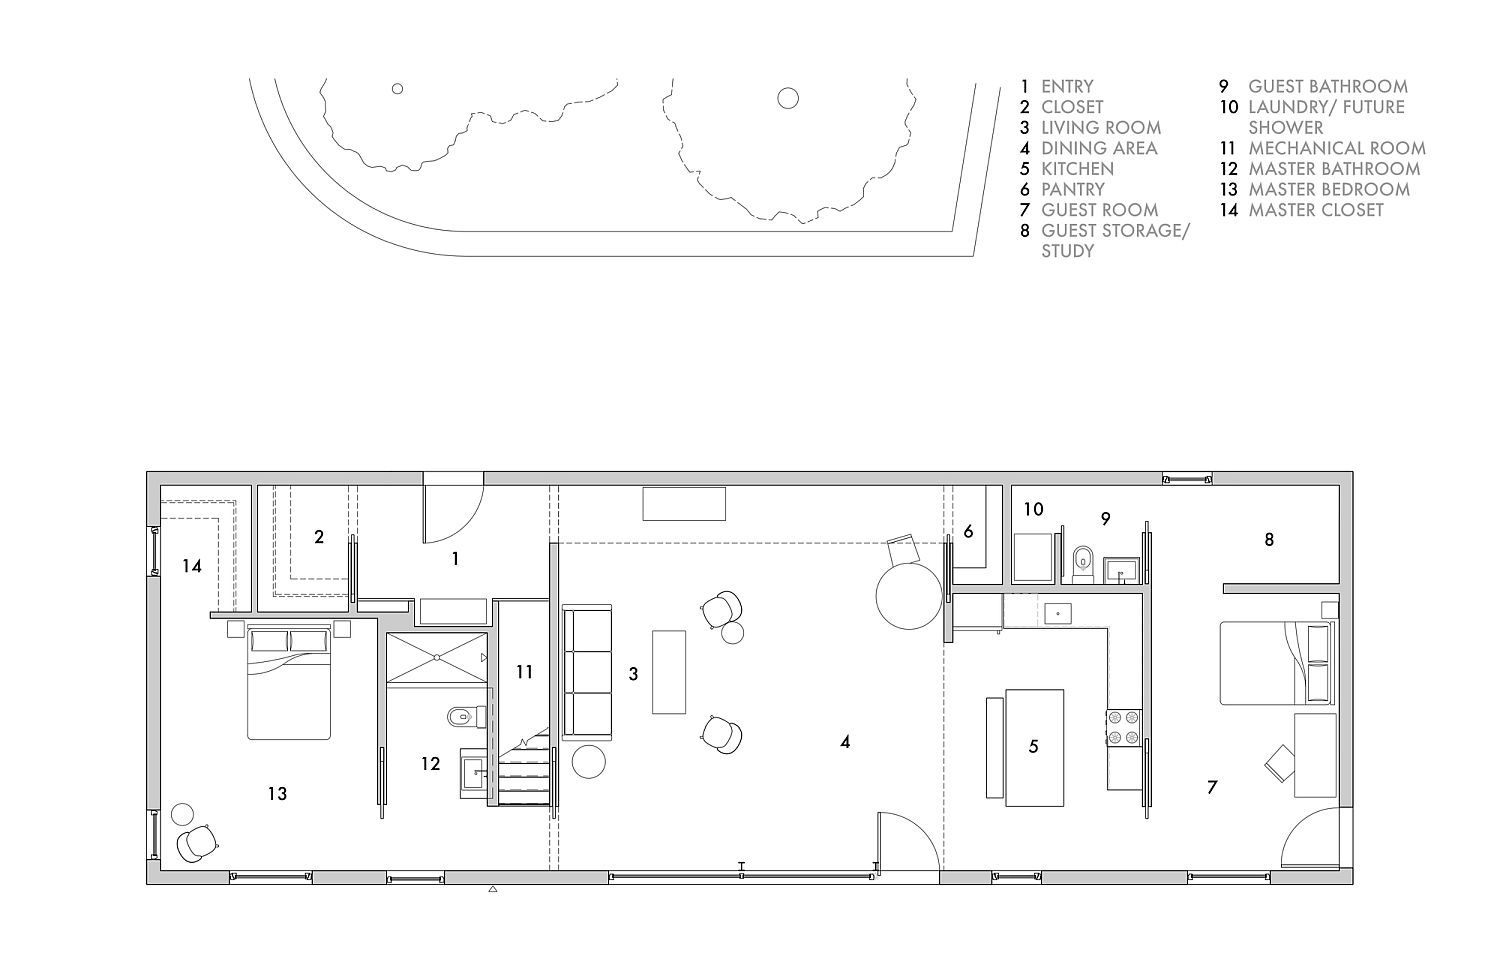 Ground level floor plan of the NY Passive House